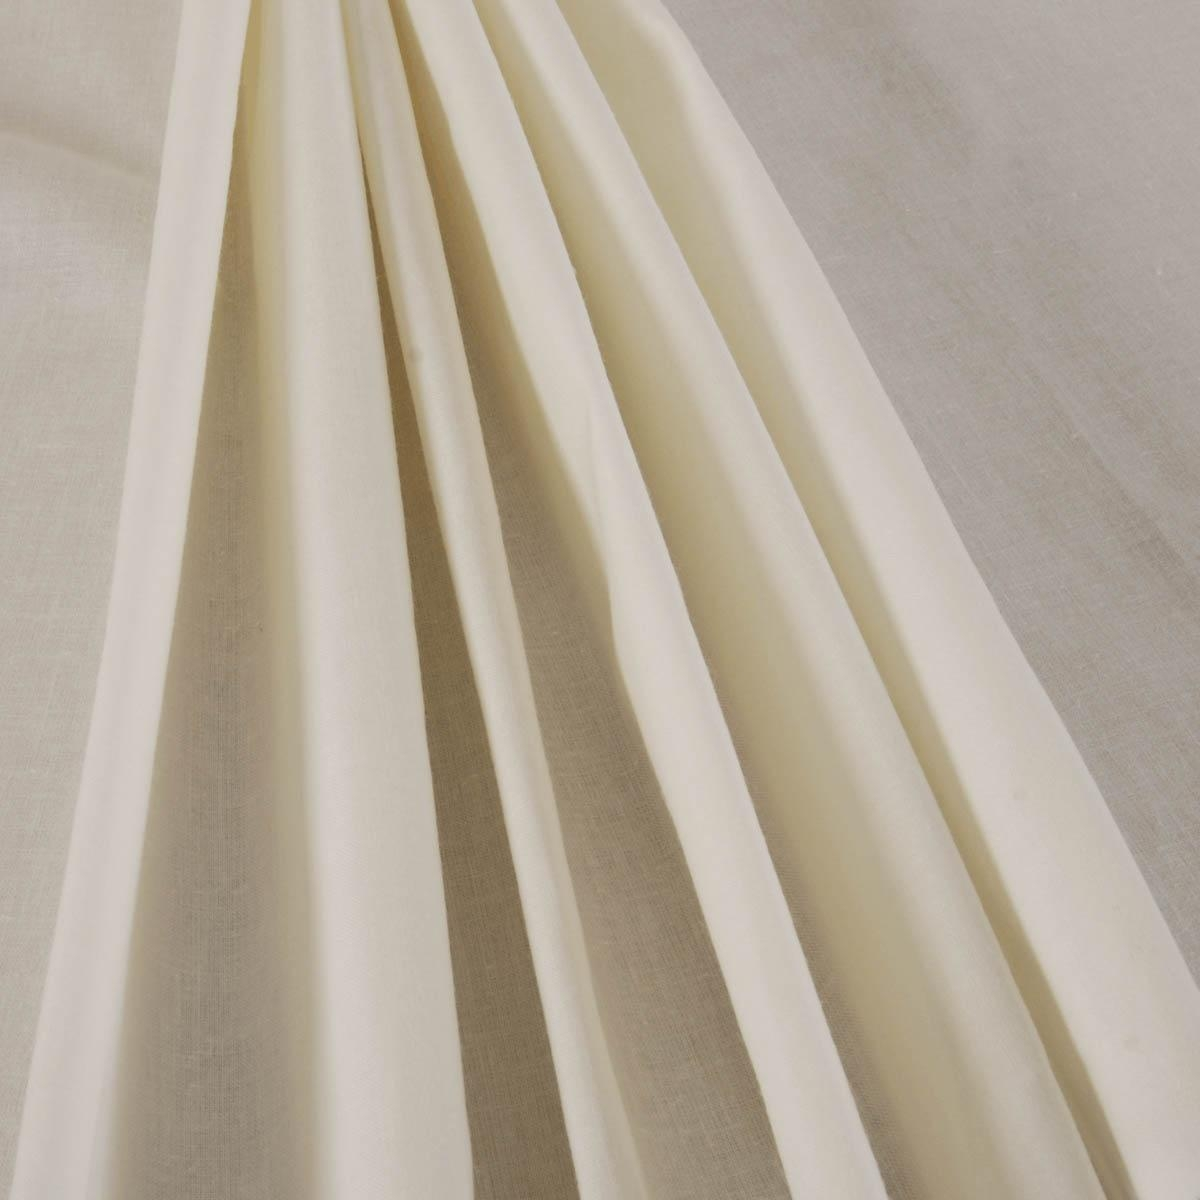 54 Poly Cotton Lining Cream Free Uk Delivery Terrys Fabrics Throughout Lined Cotton Curtains (Image 1 of 15)